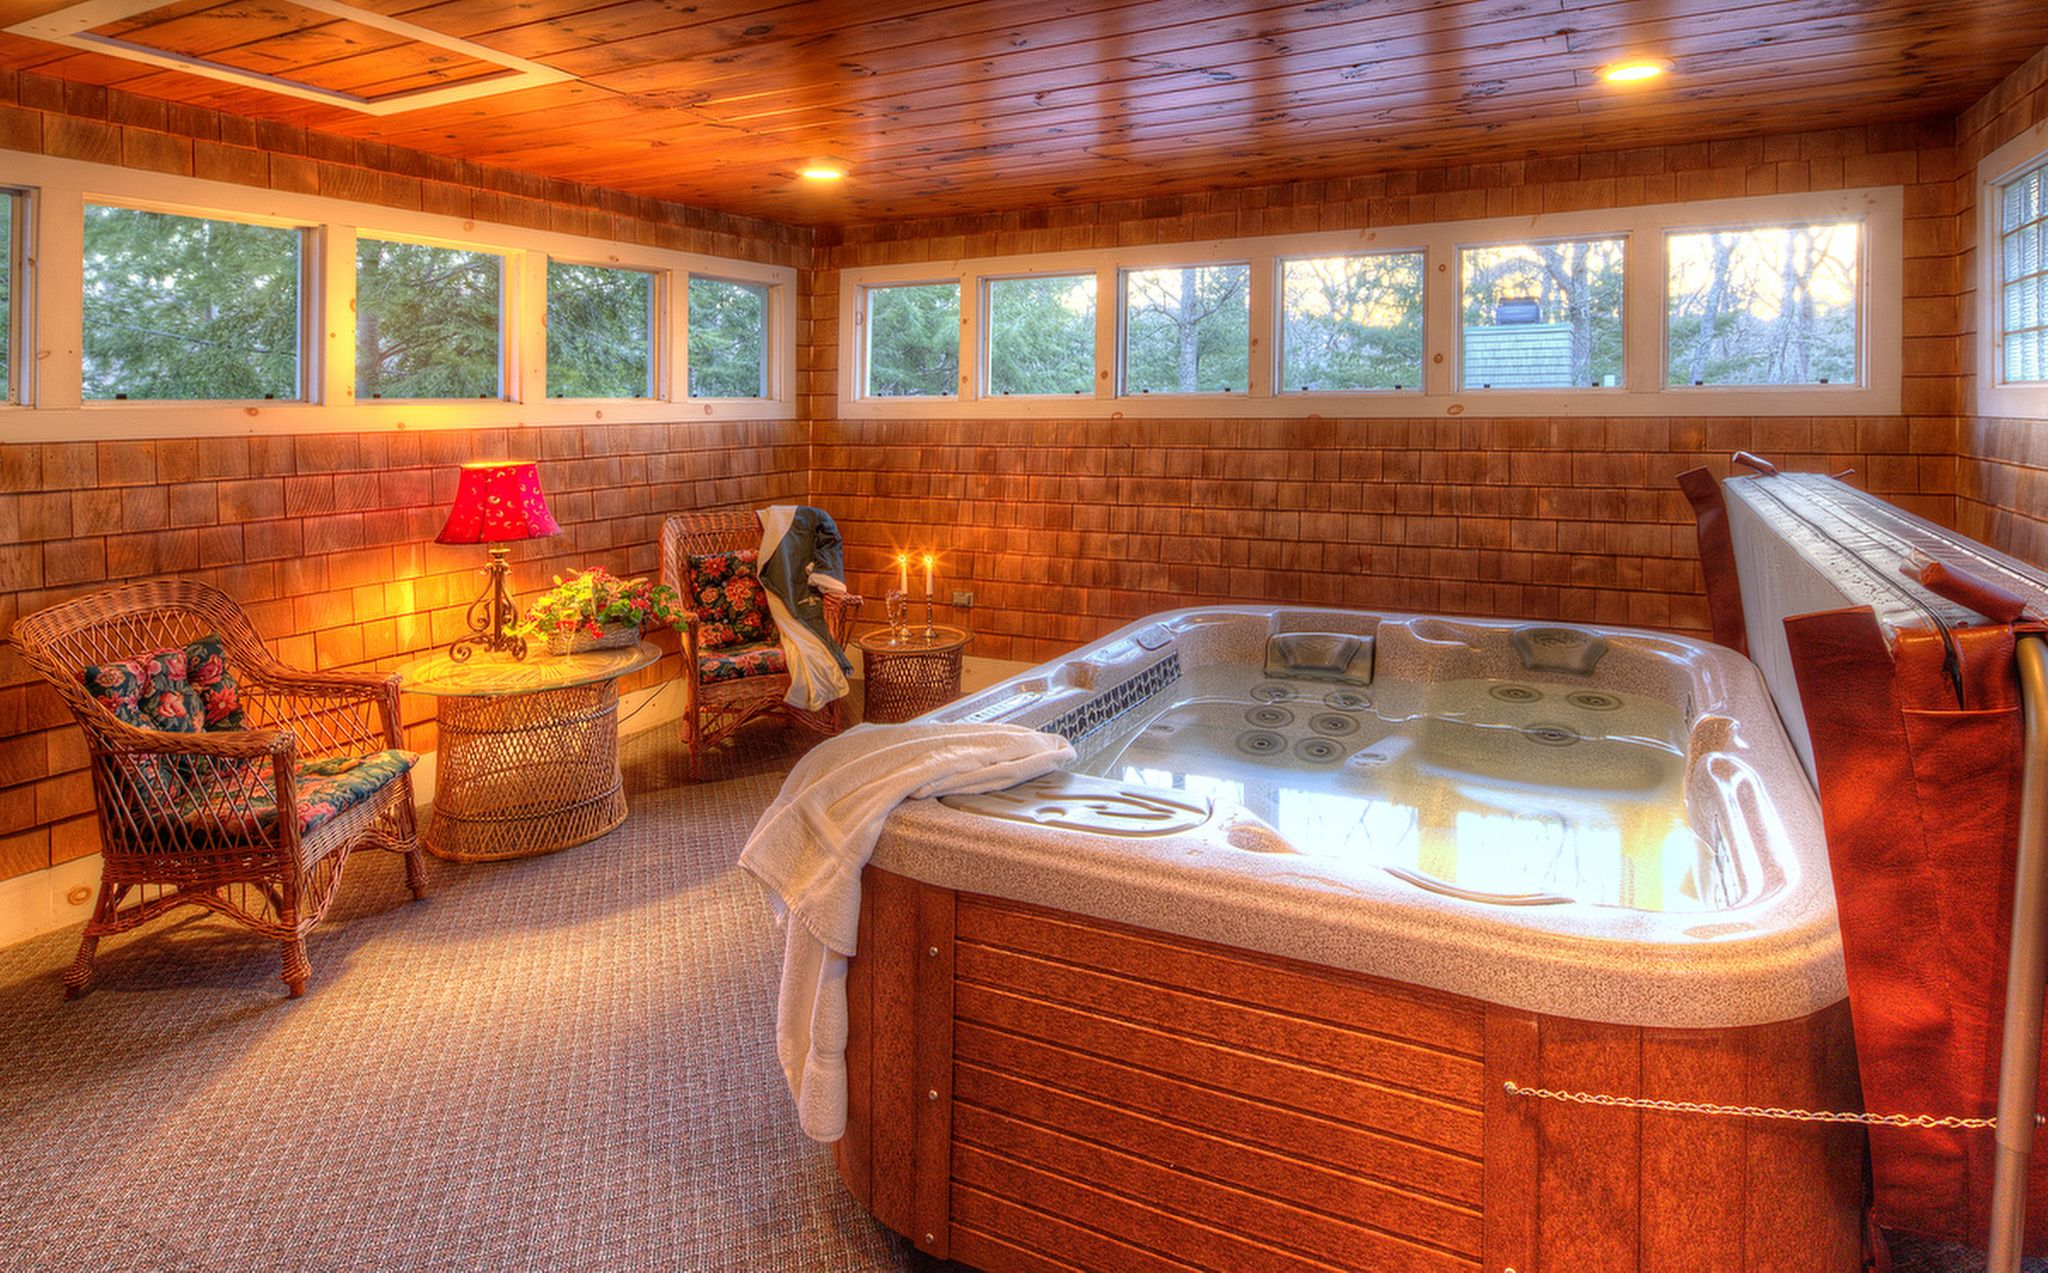 9 Amazing Cheap Hot Tubs Under $1000 For Home Relaxation | Hot tubs ...